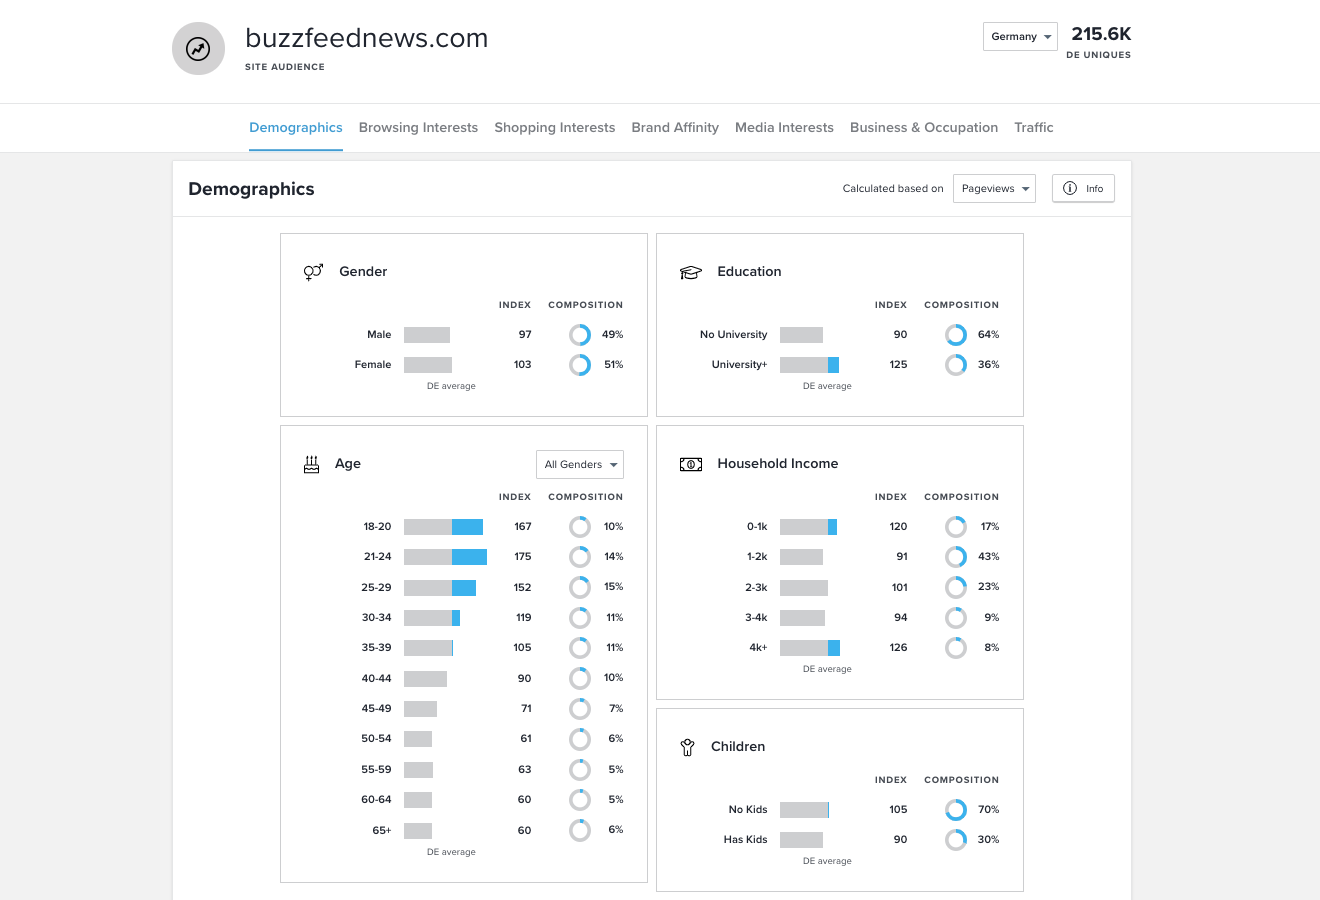 konkurrenzanalyse-website-traffic-von buzzfeed-auf-quantcast